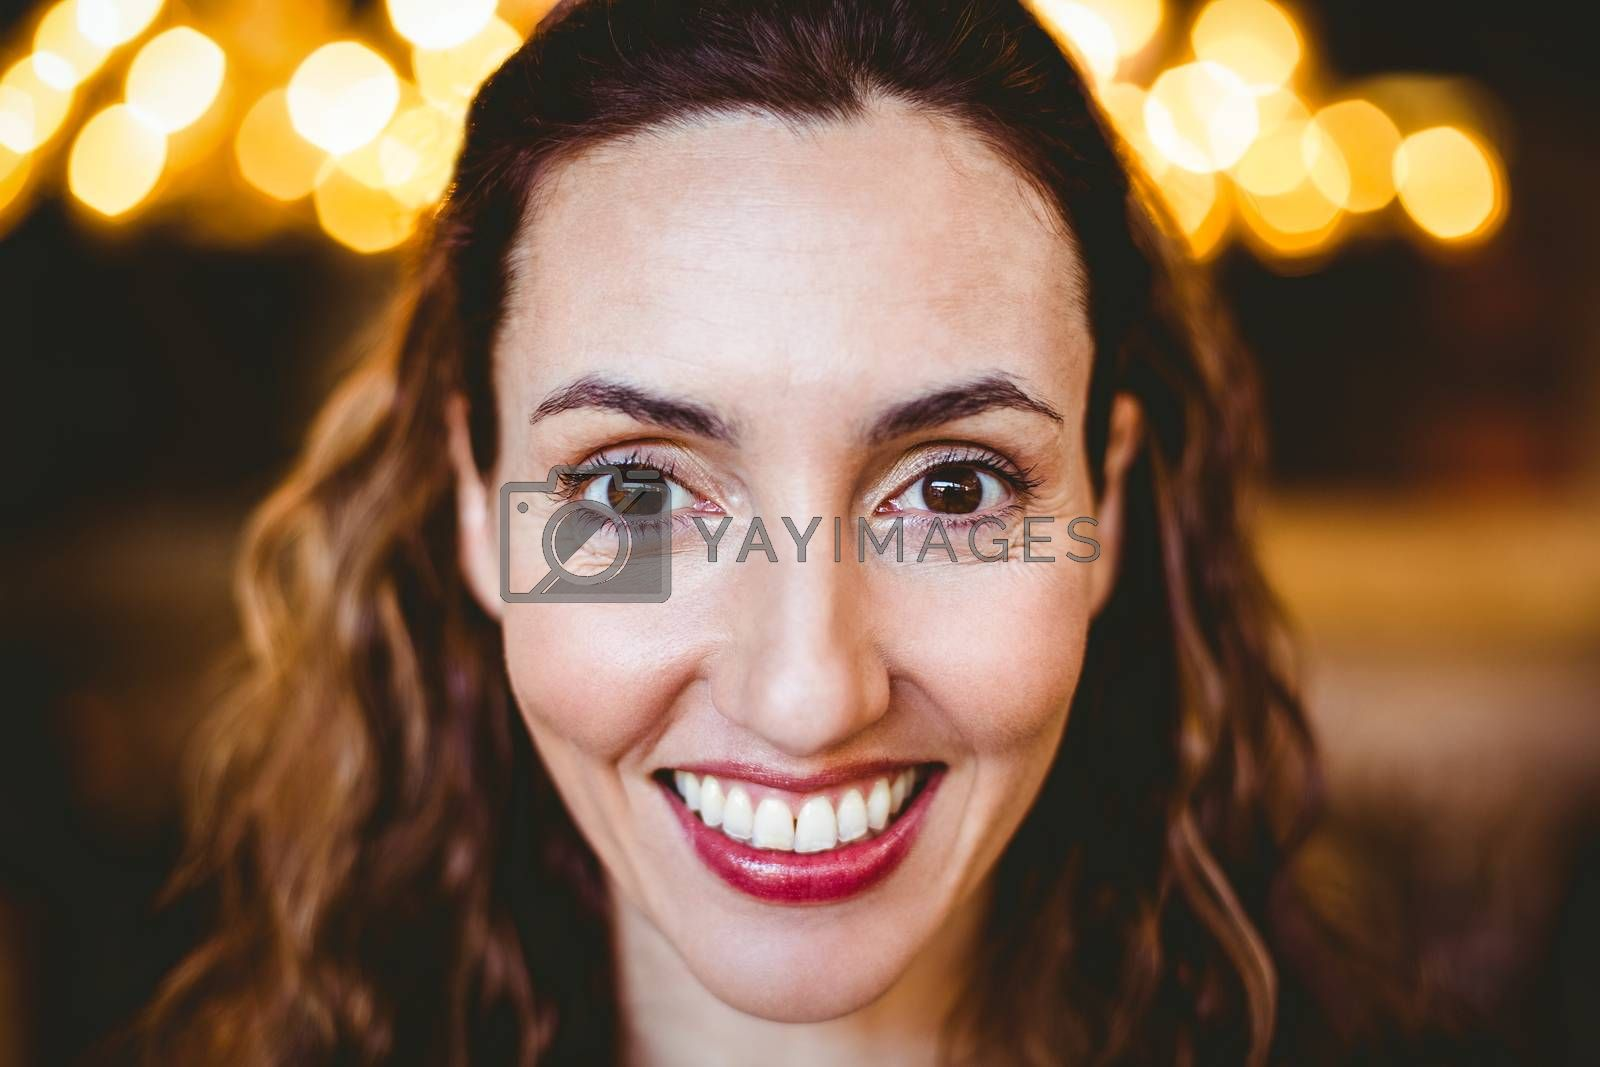 Royalty free image of Close up of pretty brunette smiling at camera by Wavebreakmedia